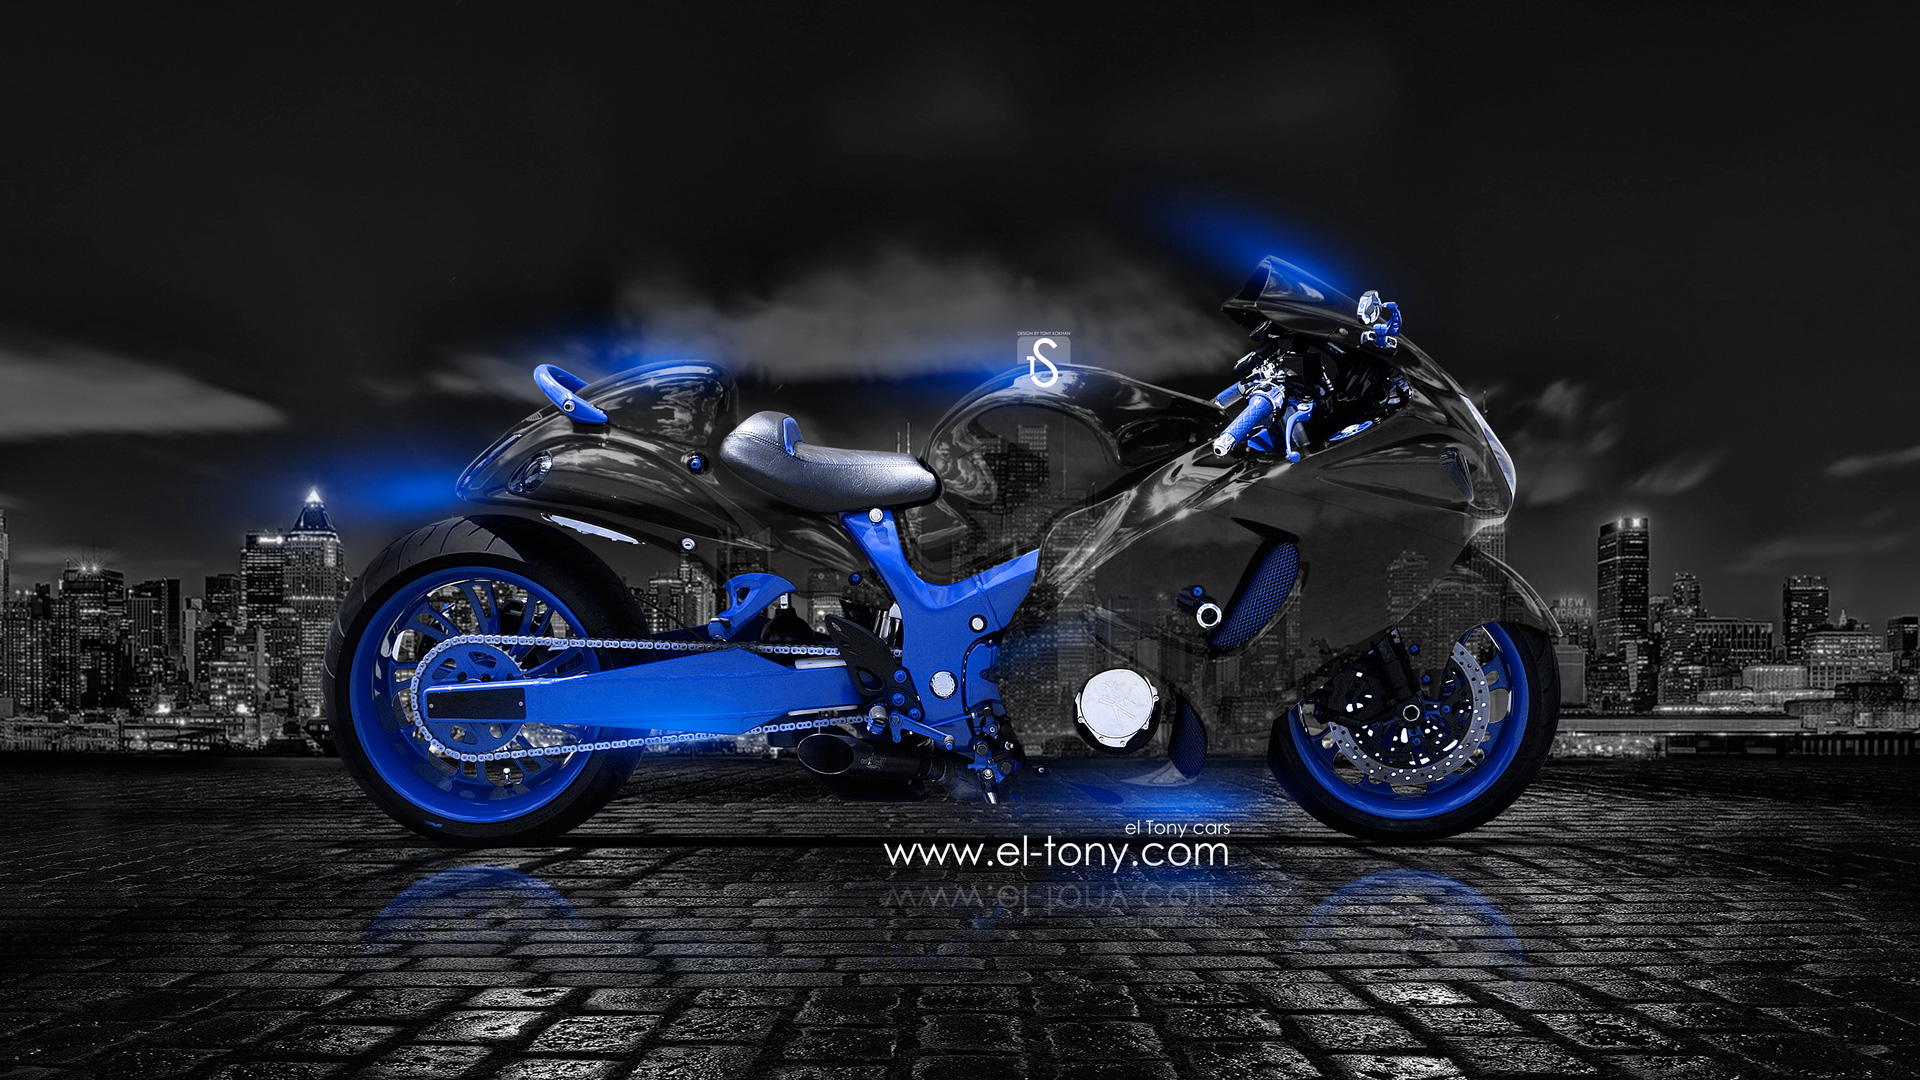 Ordinaire ... Moto Suzuki Hayabusa Crystal City Car 2014 Blue